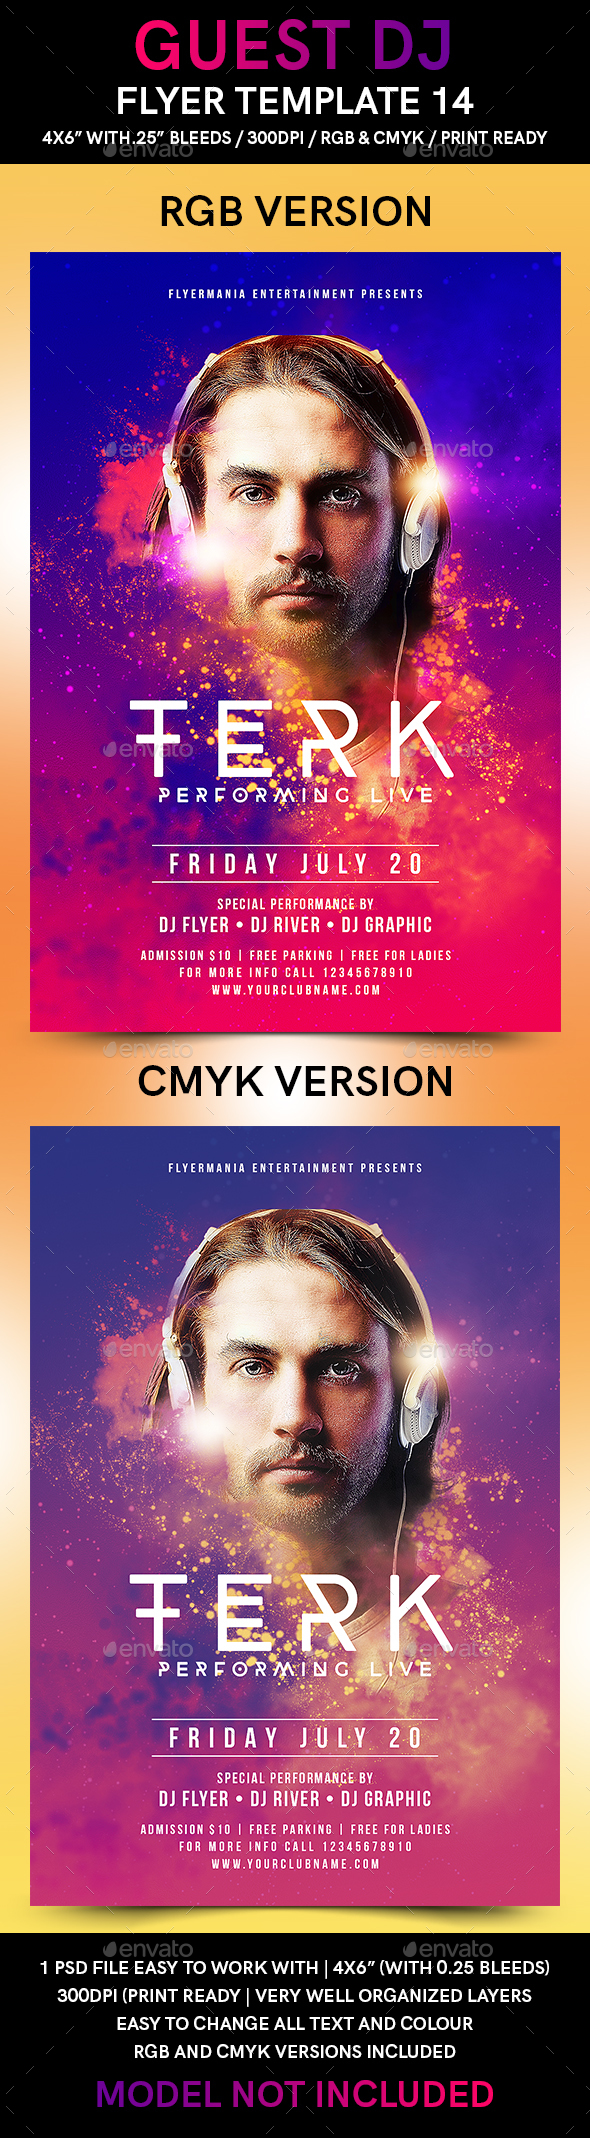 Guest DJ Flyer Template 14 - Flyers Print Templates